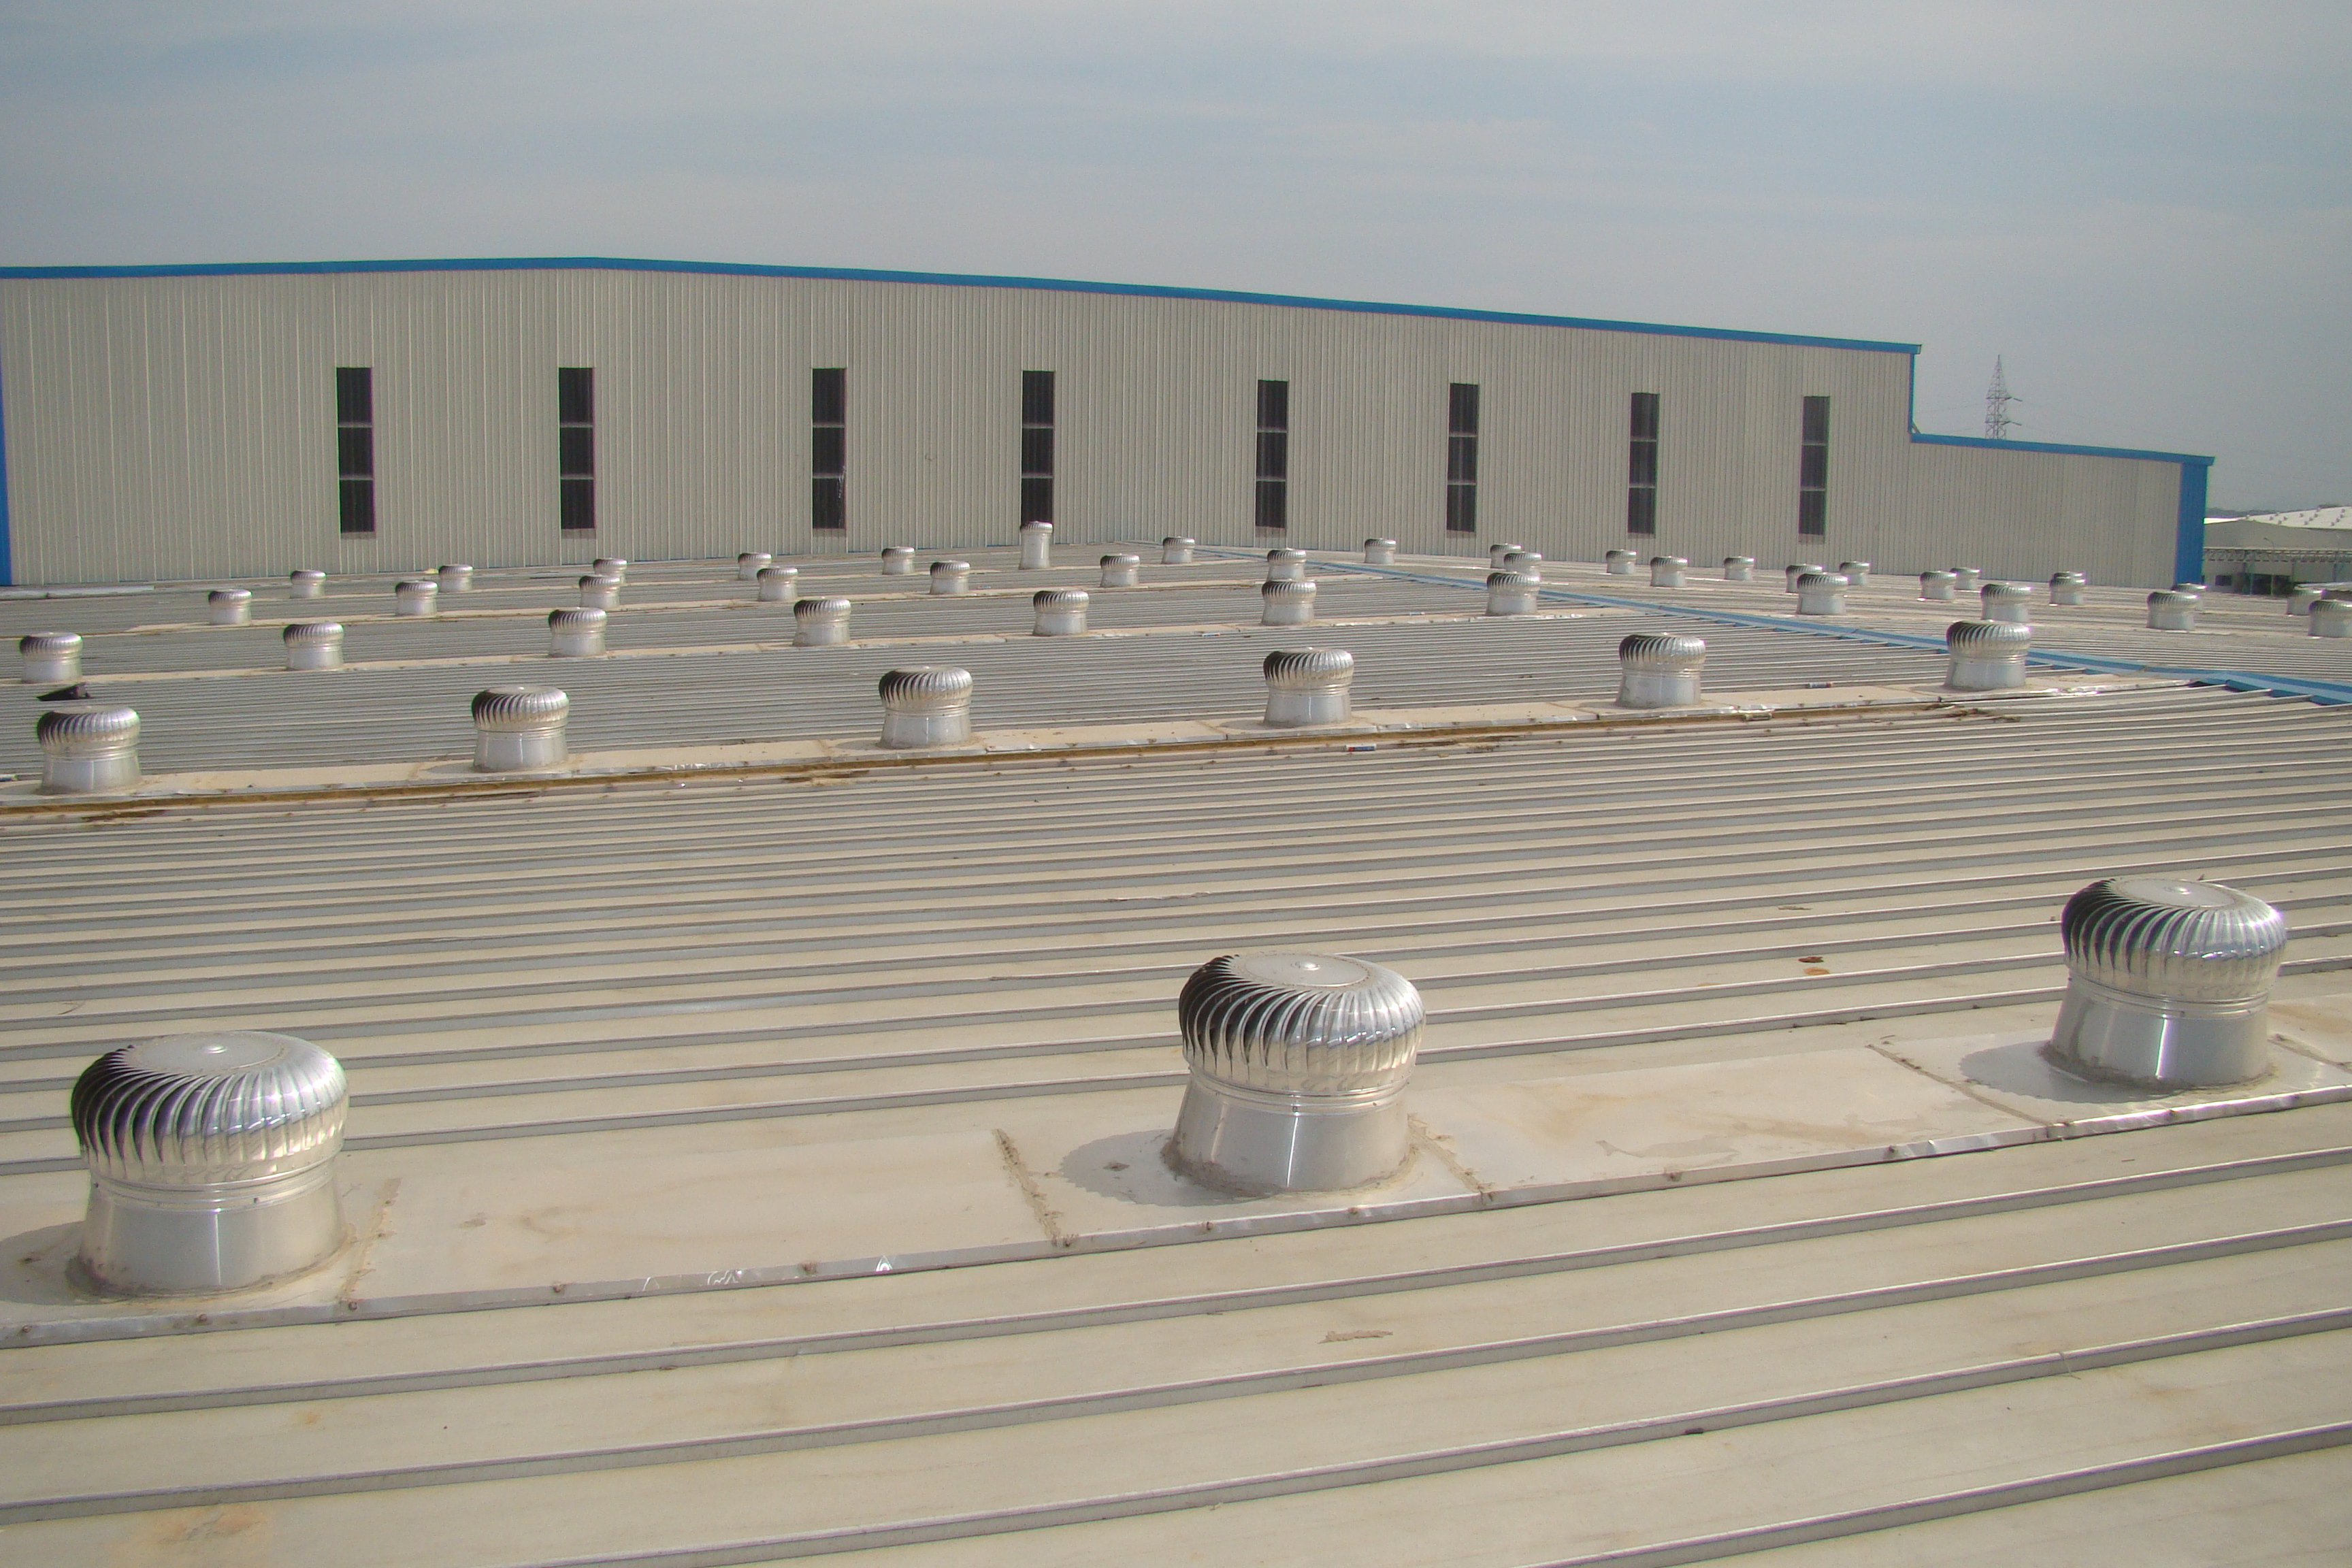 Wind Driven Ventilators  The wind driven ventilators totally built by aluminium it is automatically rotate without power it will helpful to  suck the hot and humidity from the factory inside premises